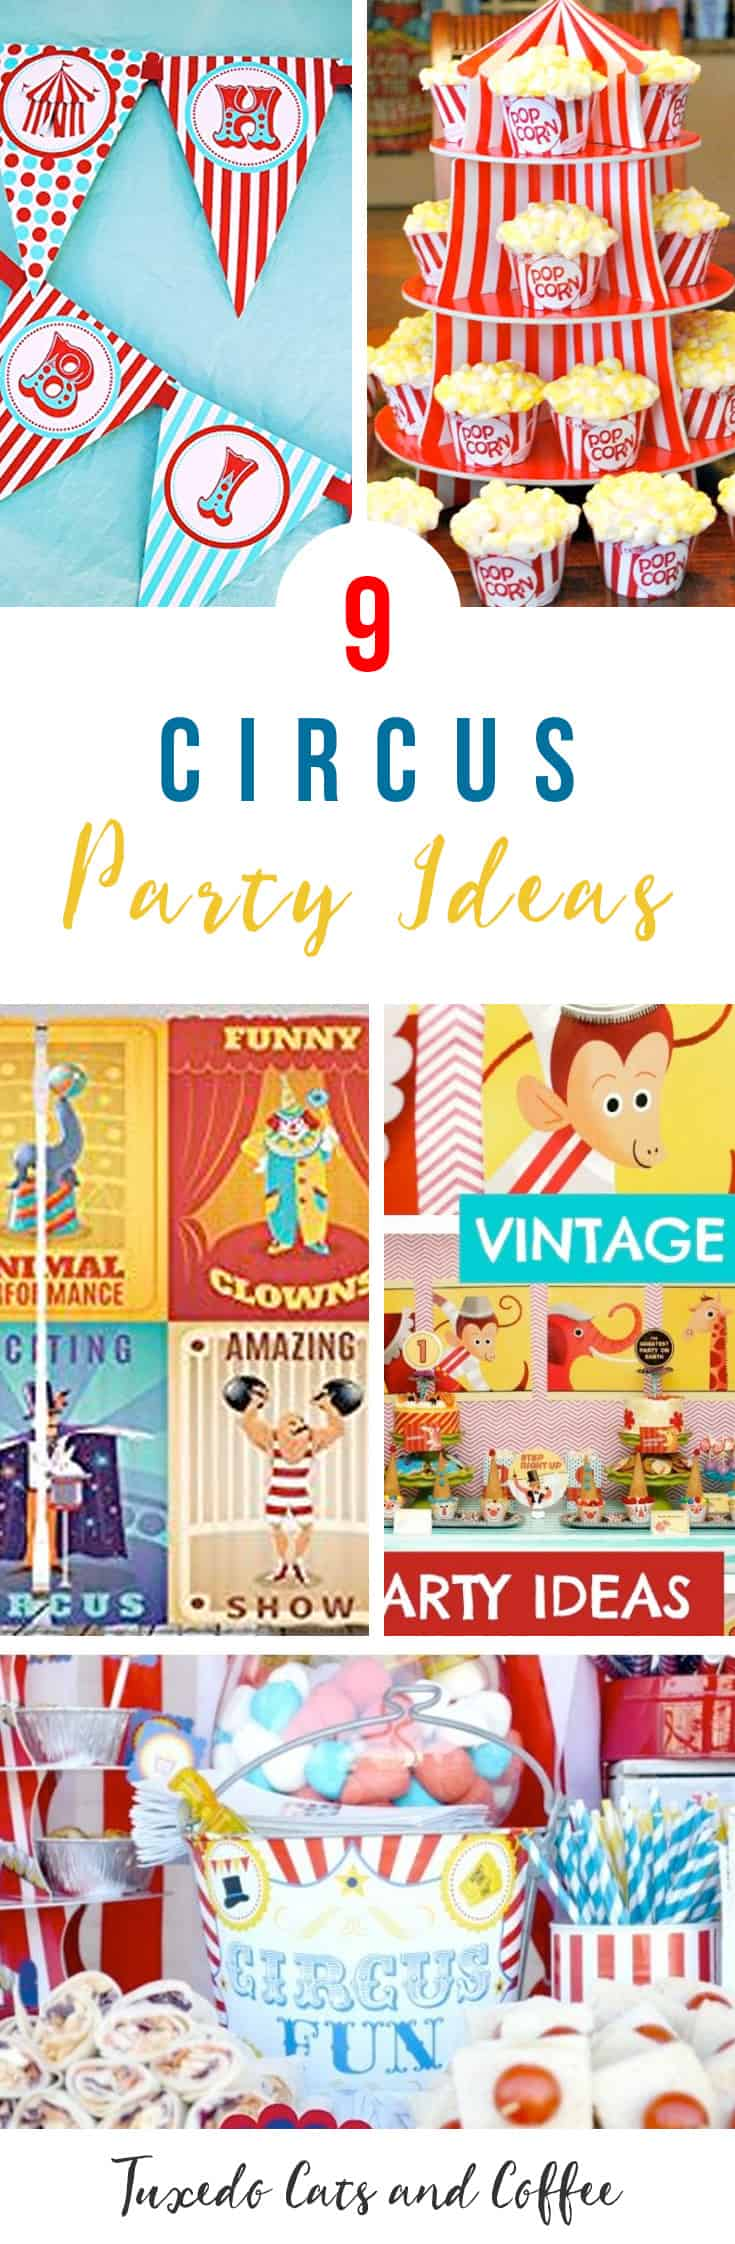 Throw a fun three ring circus party! These circus party decorations are great for a circus-themed birthday party and will be a hit among kids and children. Here are more than 9 circus party ideas.